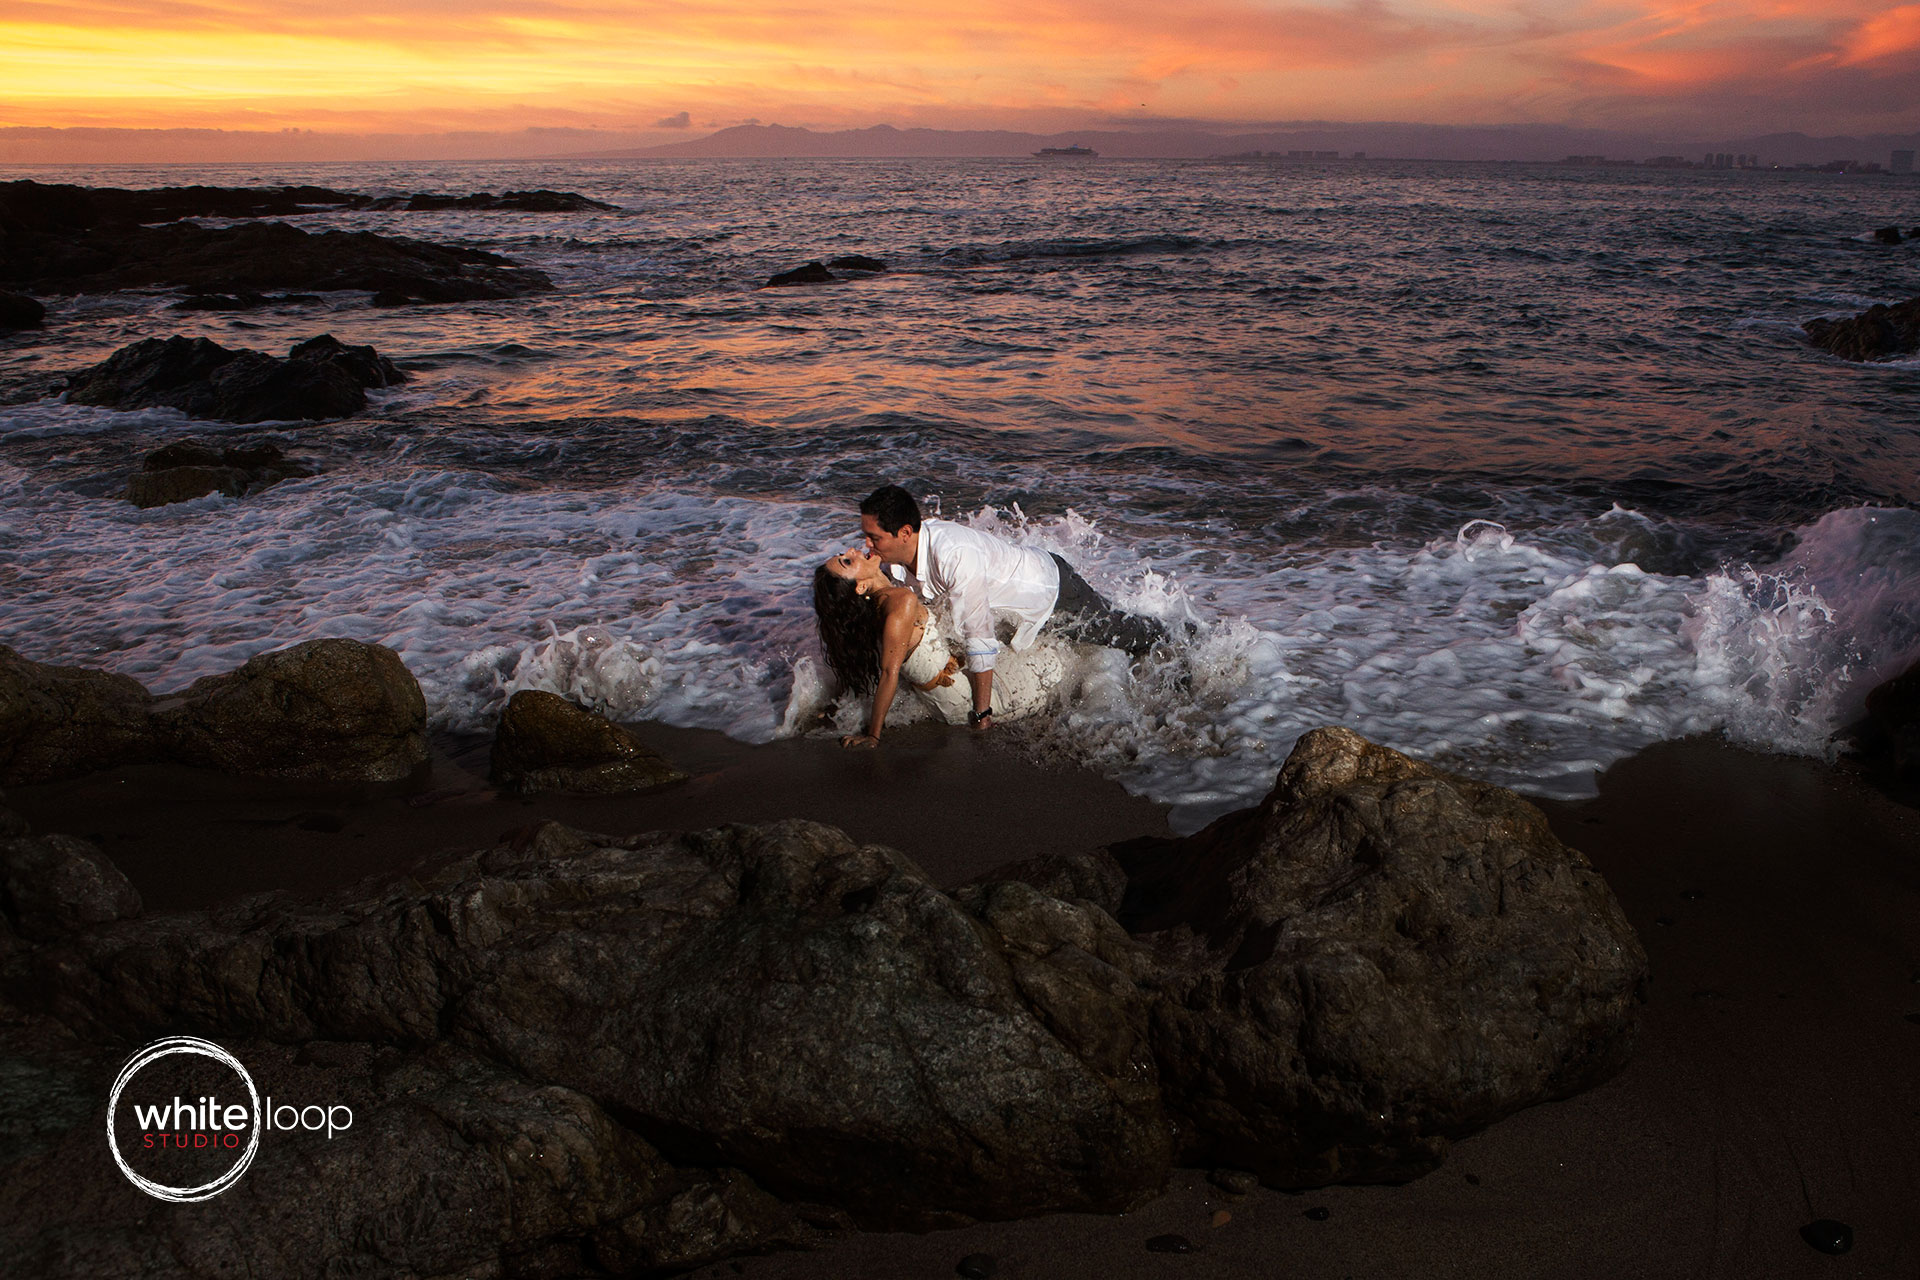 The bride and the groom getting wet at the seashore of the ocean.